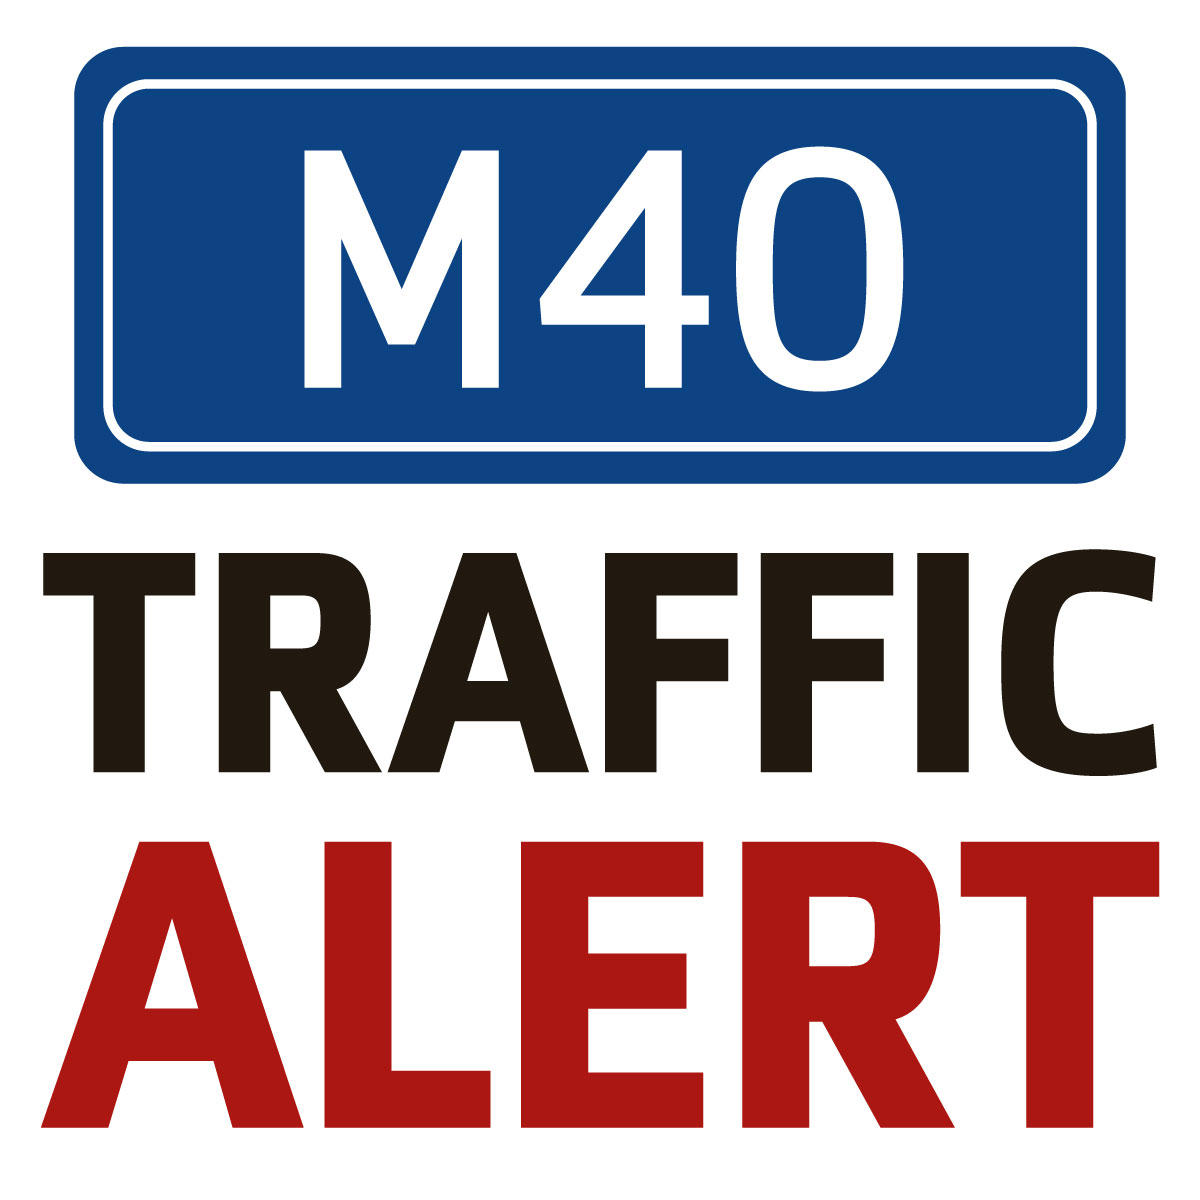 Crash on M40 causes delays